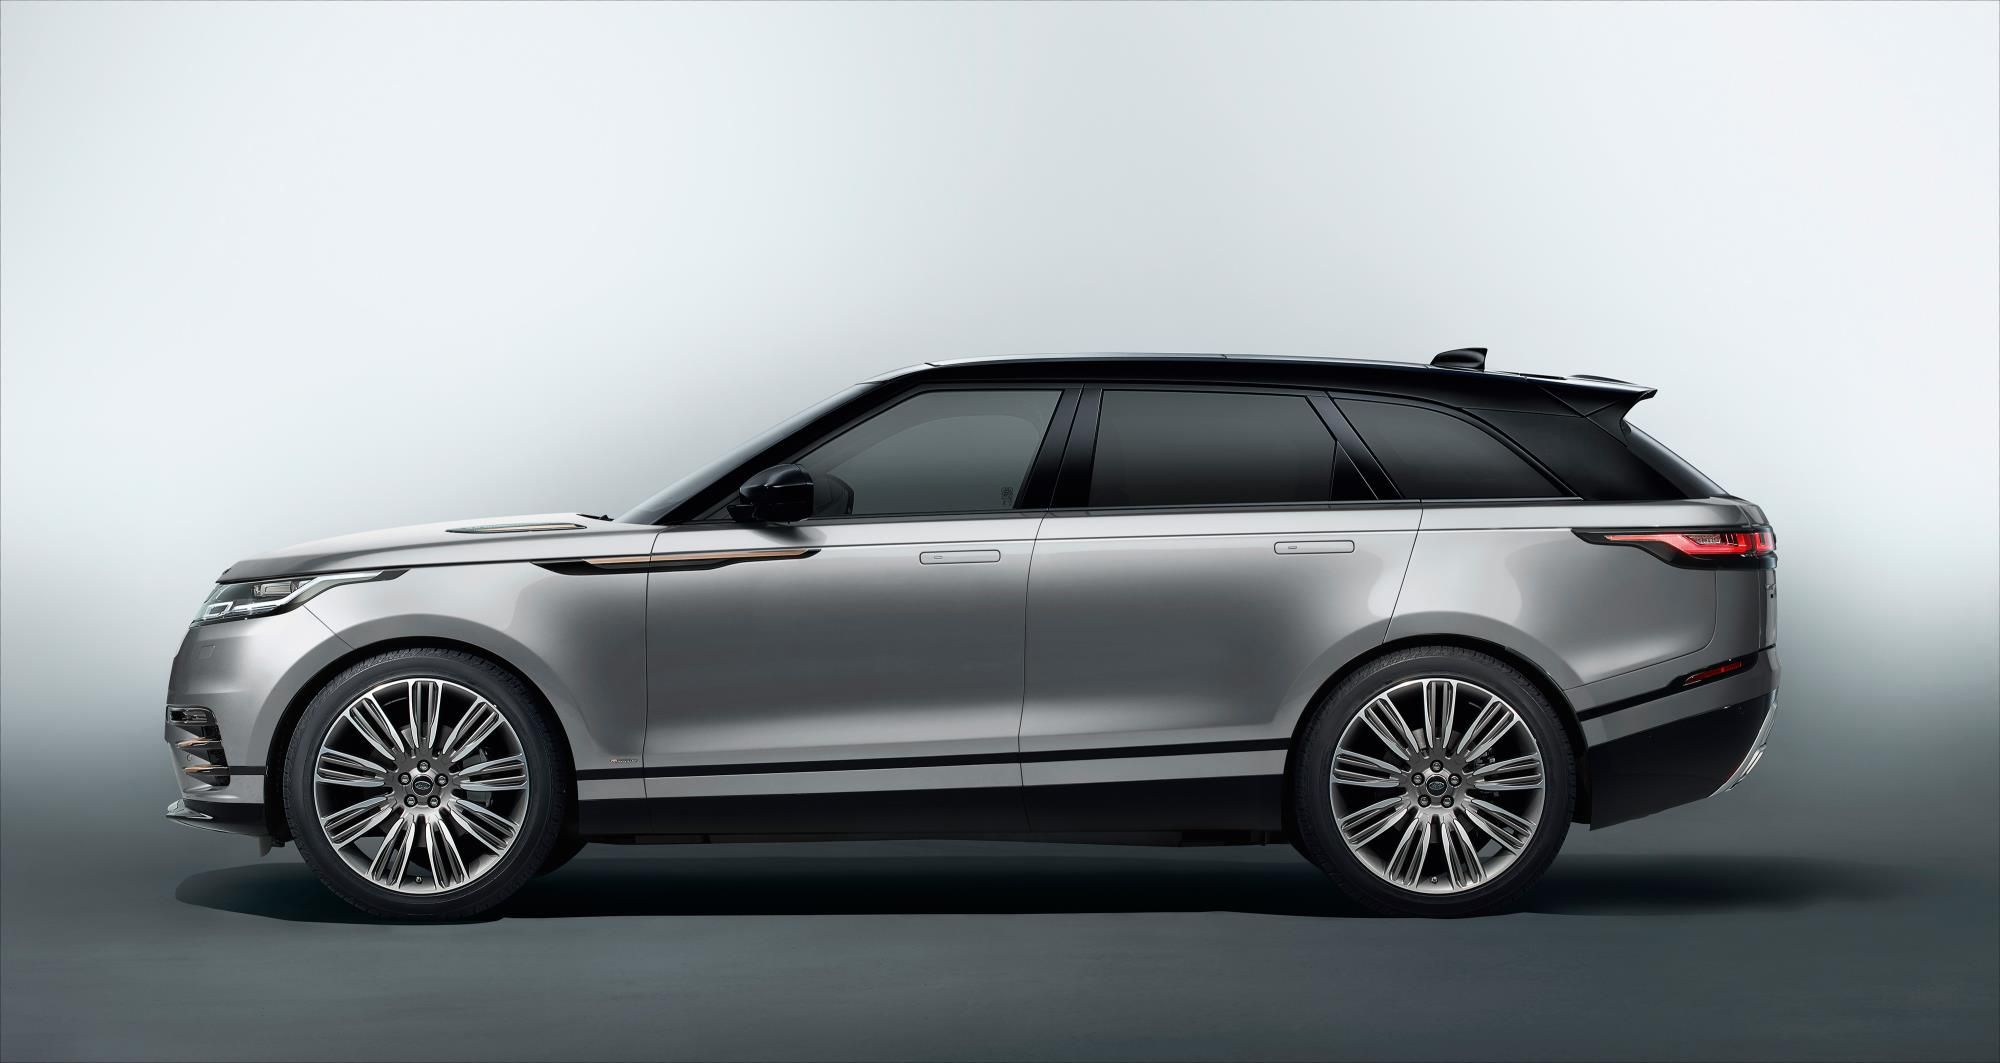 2020 Road Rover Electric Suv Could Be An Allroad Style Wagon Autoevolution Range Rover Range Rover Evoque Land Rover